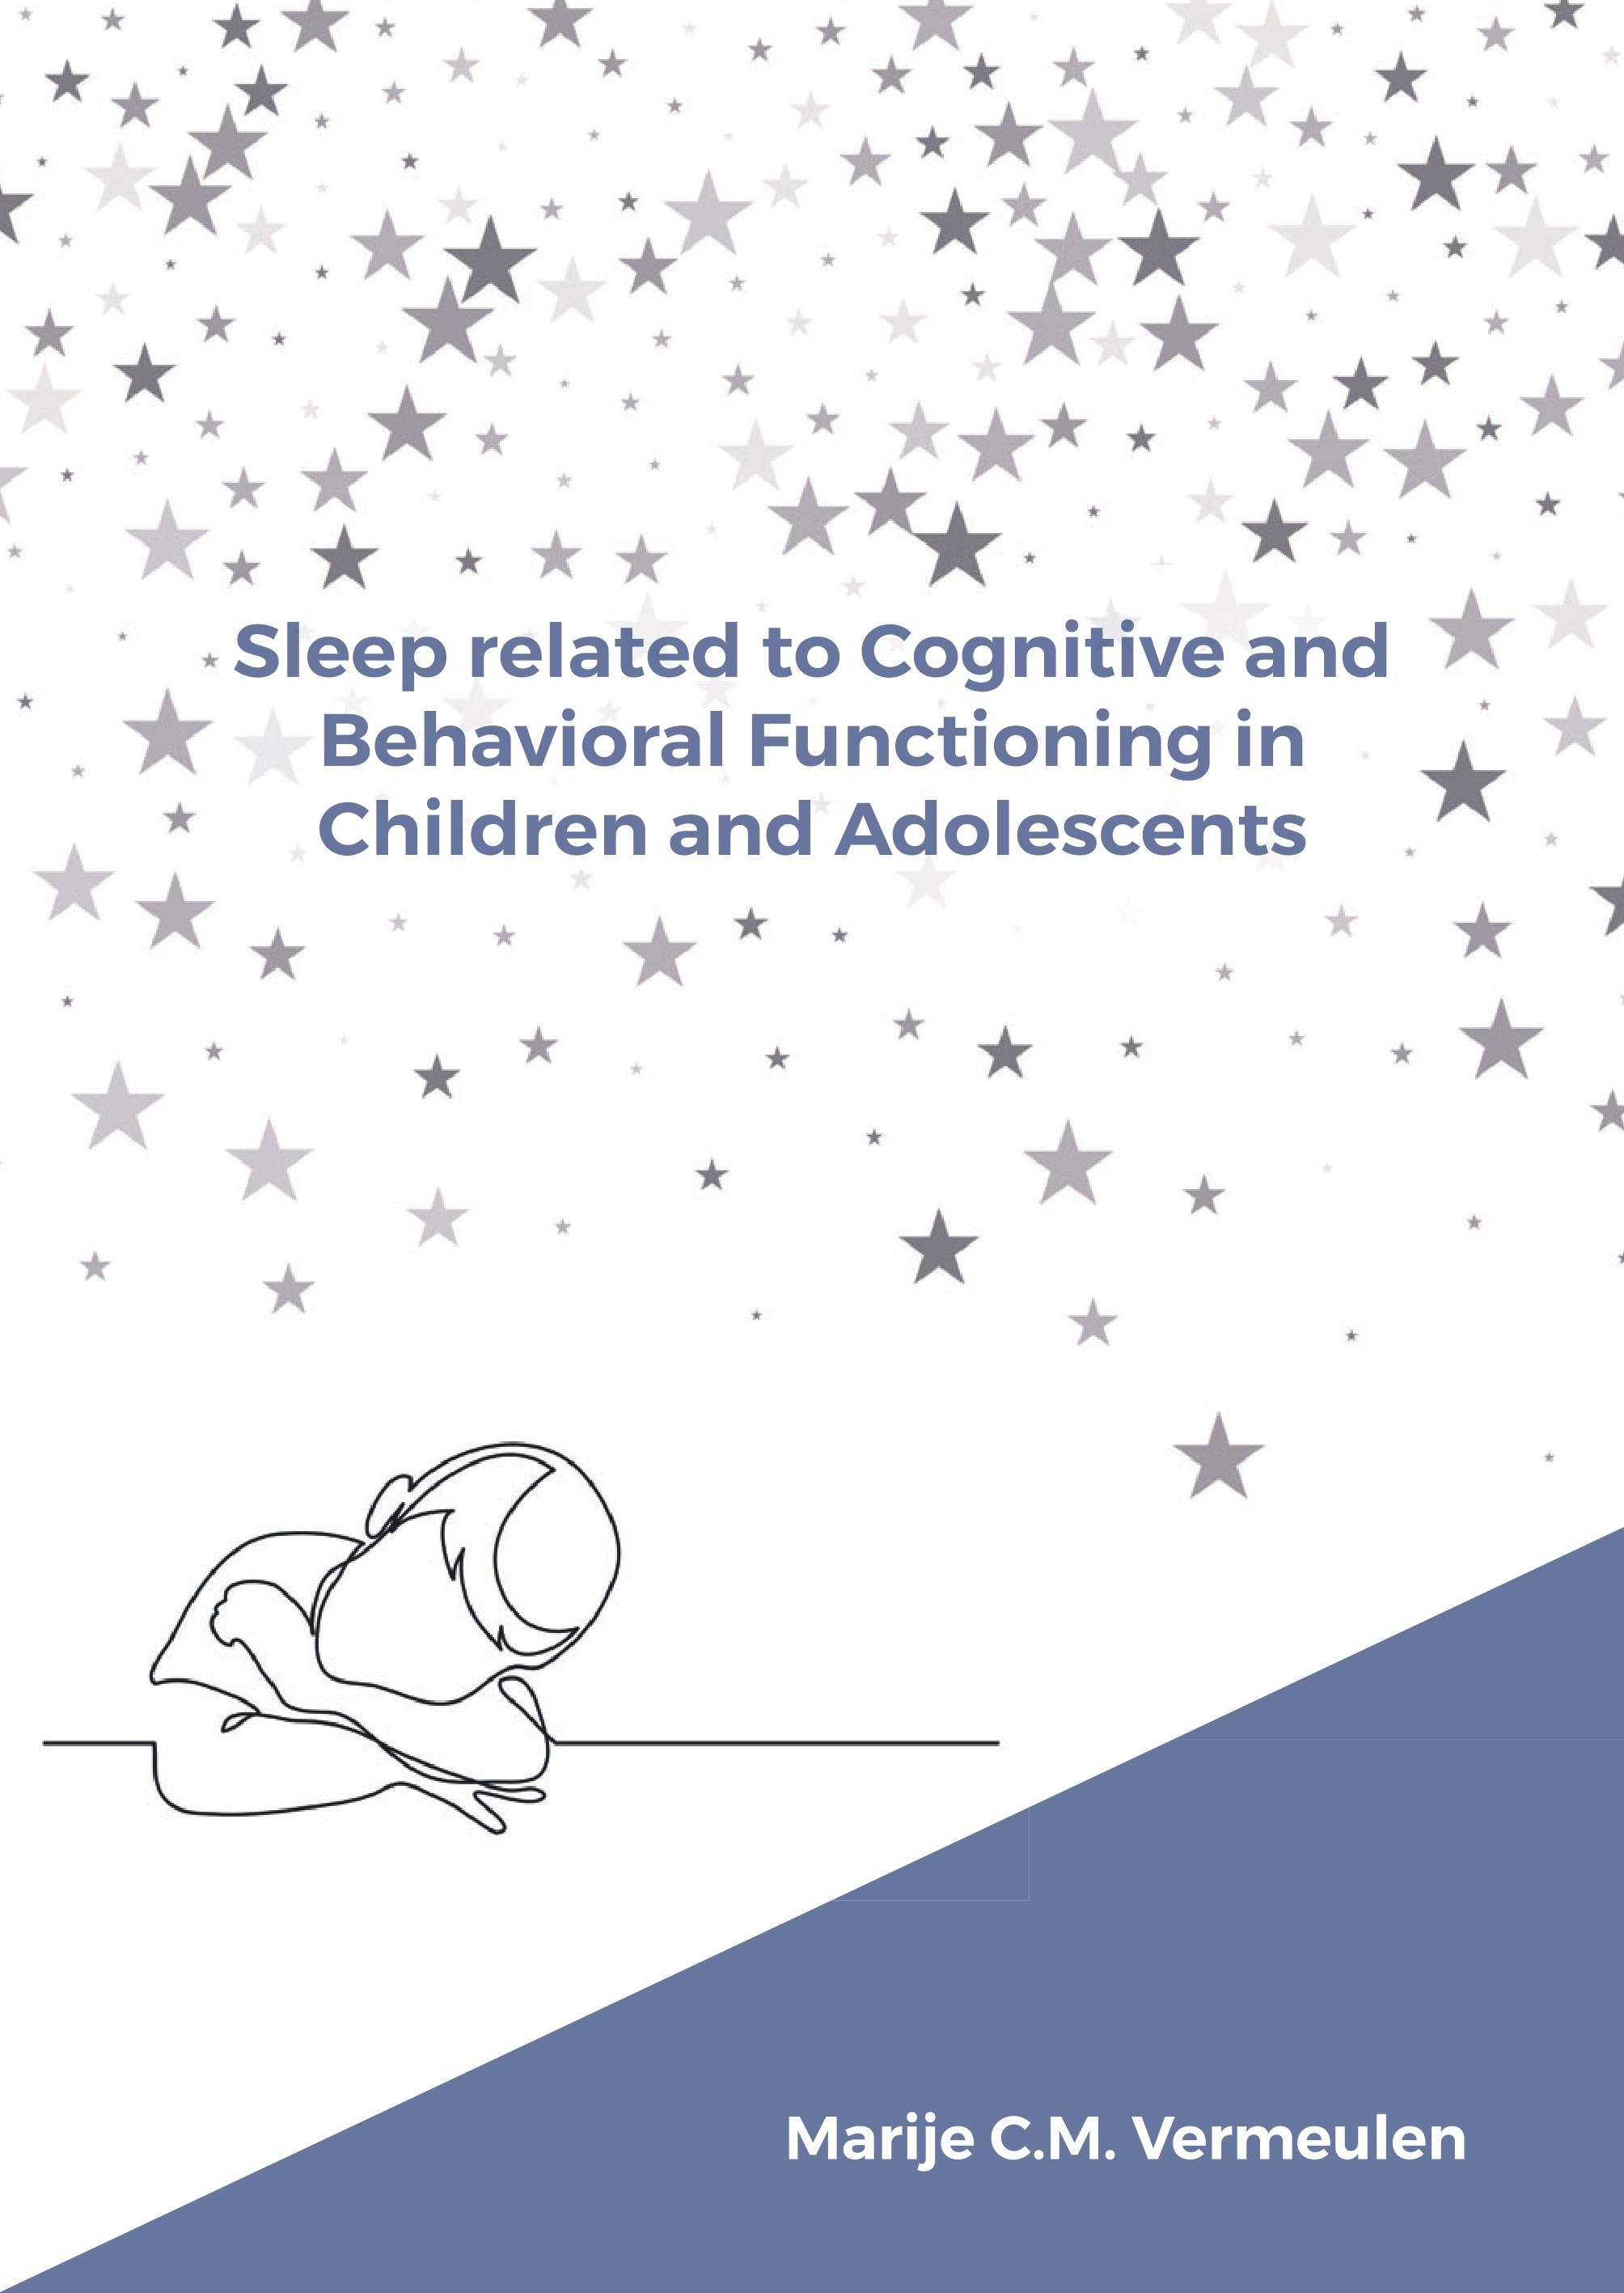 Sleep related to cognitive and behavioural functioning in children and adolescents door Marije C.M. Vermeulen